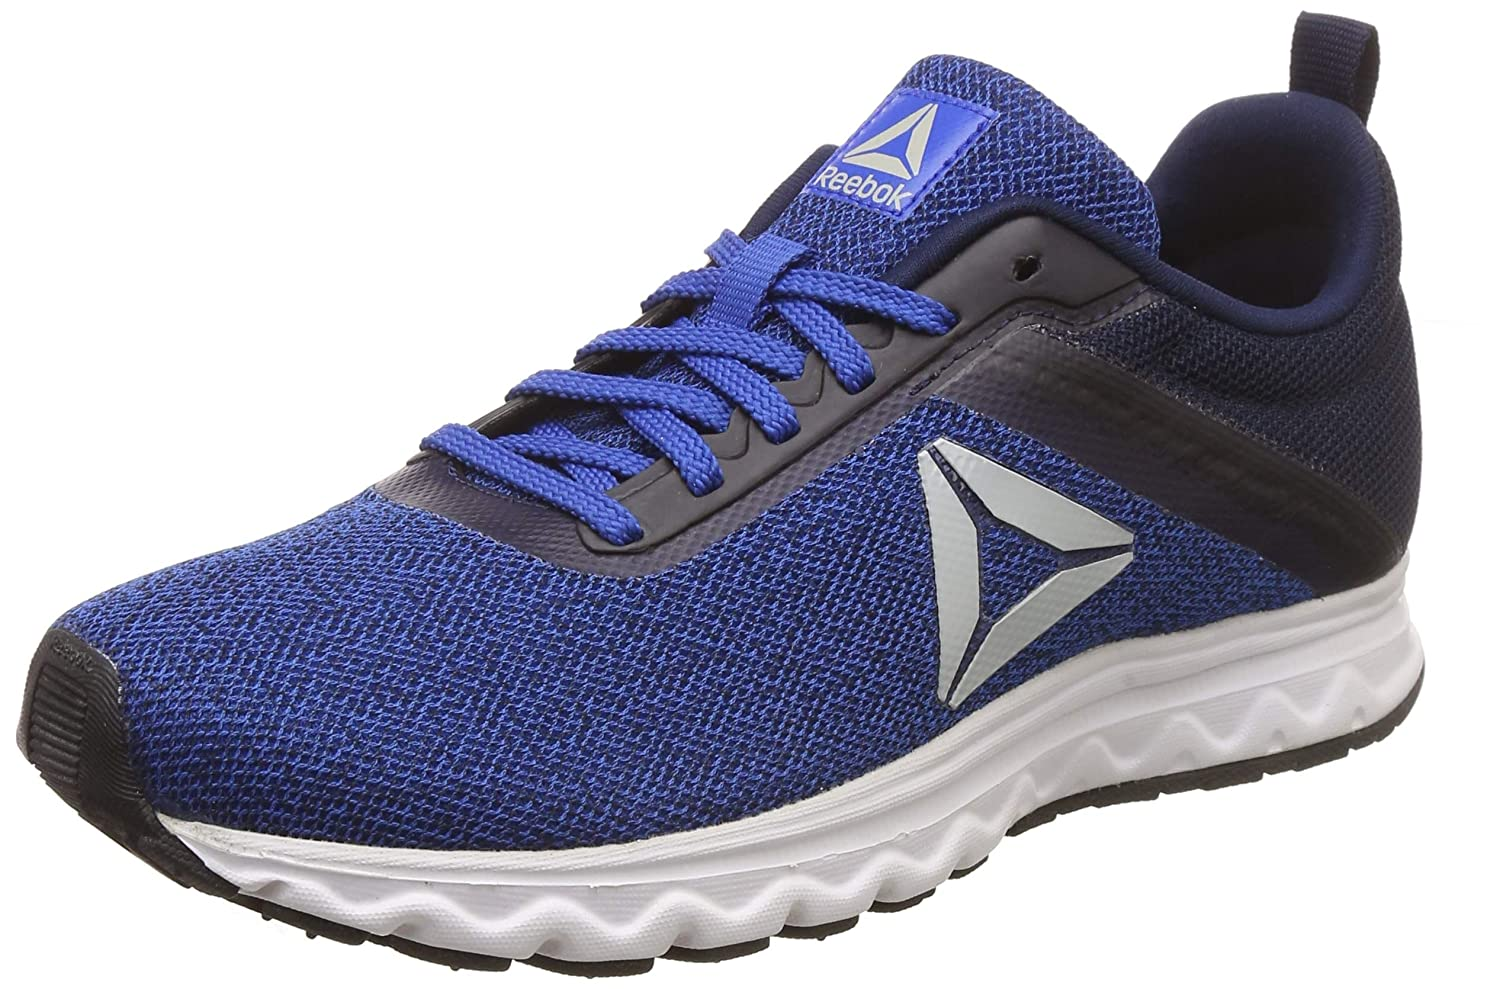 Reebok Flyer Lp Best Branded Running Shoes For Men in India to Buy Online - Sep 2019